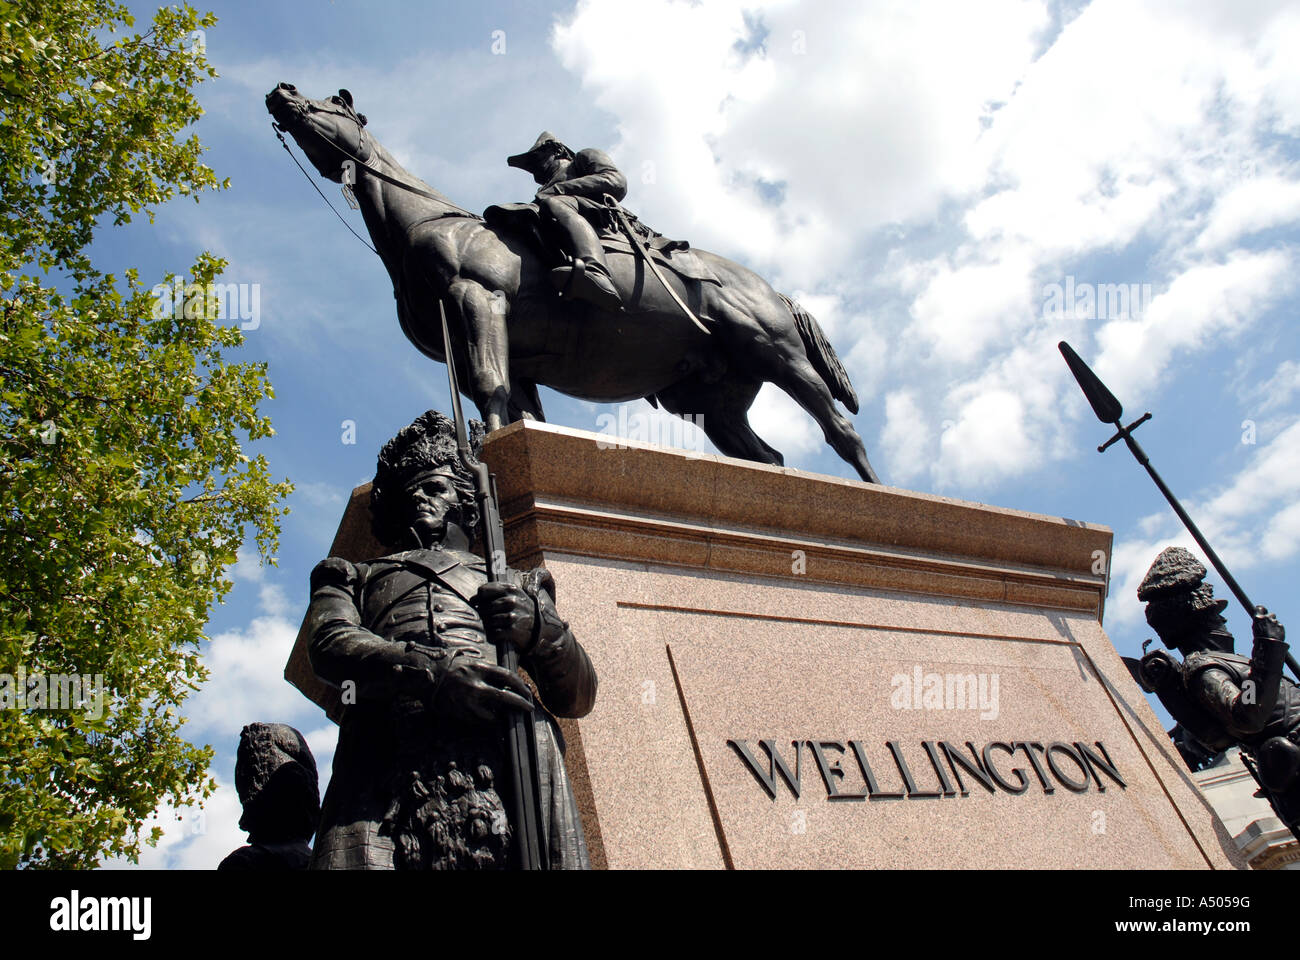 Statue of The Duke of Wellington at the Wellington Arch Hyde Park Corner London - Stock Image